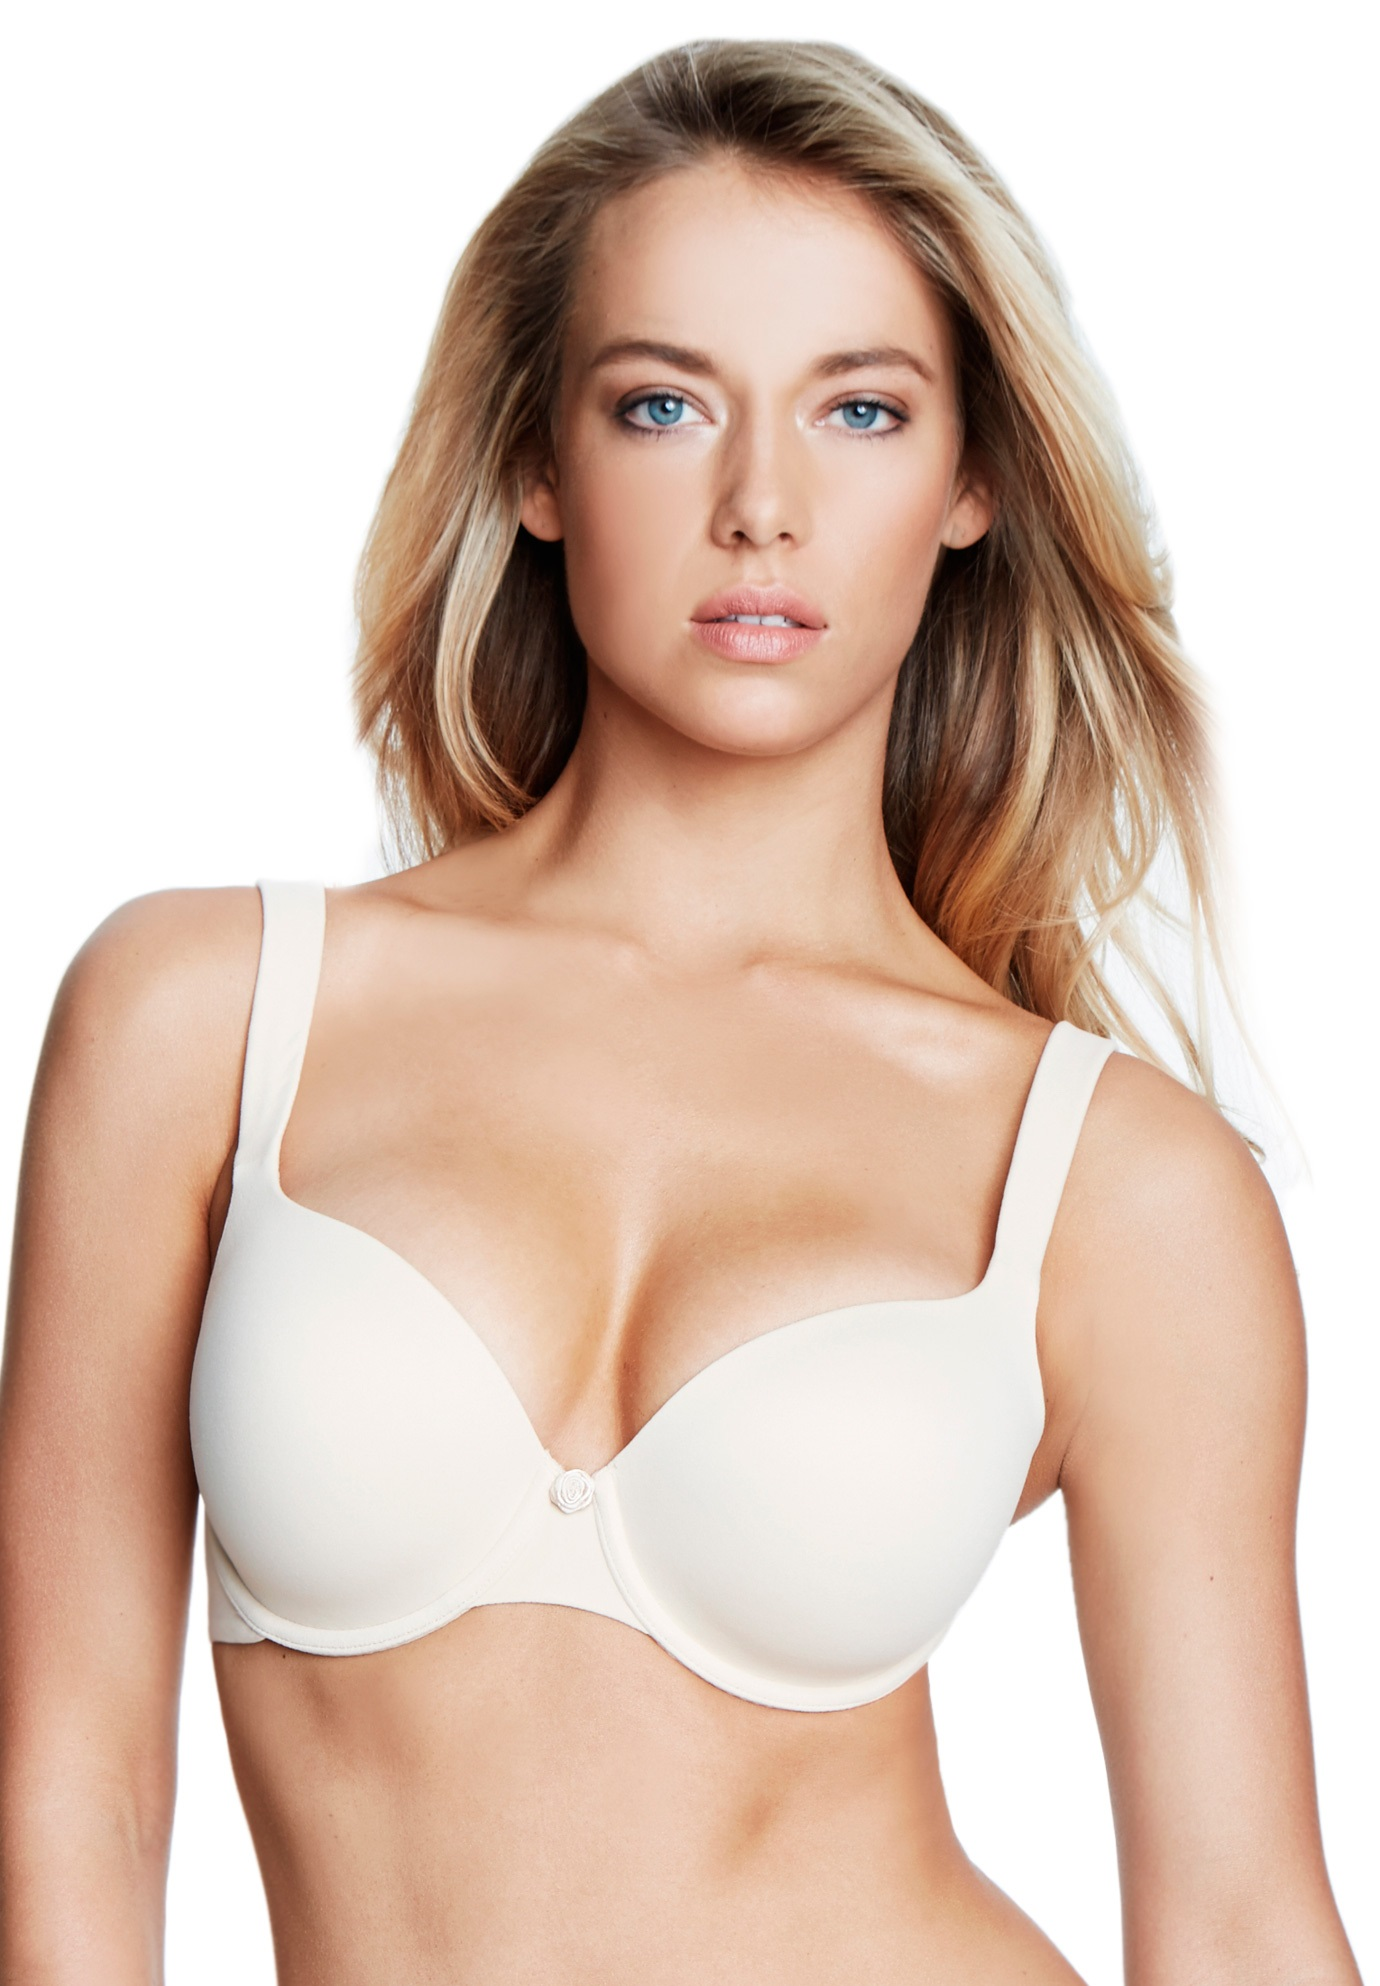 Dominique™ Maxine Everyday Demi T-shirt Bra,